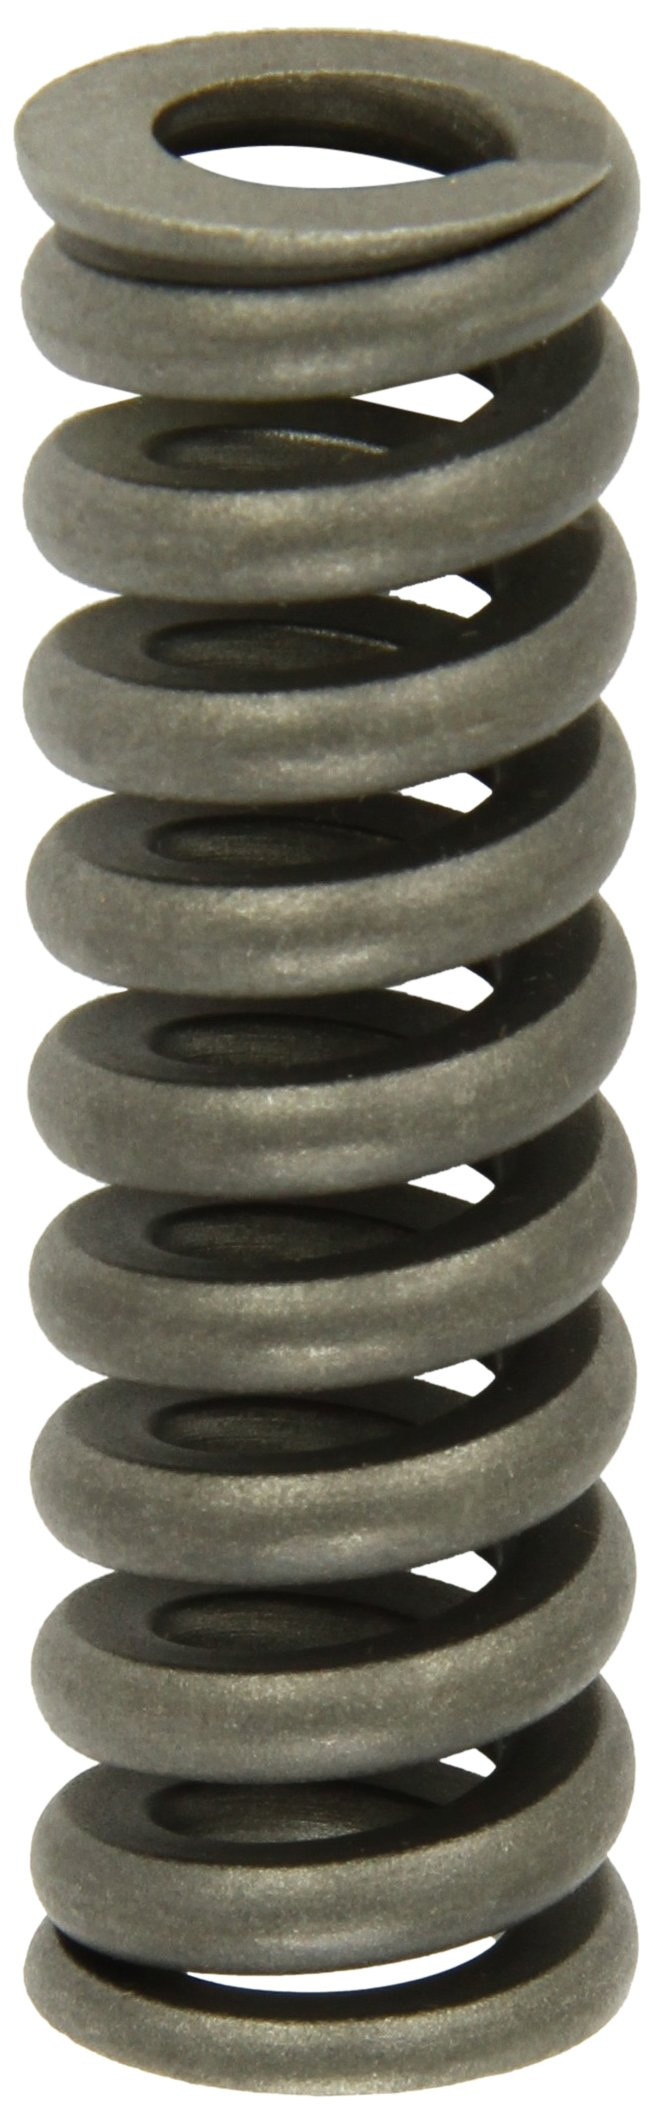 """Heavy Duty Compression Spring, Chrome Silicon Steel Alloy, Inch, 1"""" OD, 0.188 x 0.221"""" Wire Size, 3"""" Free Length, 2.55"""" Compressed Length, 331.2lbs Load Capacity, 736lbs/in Spring Rate  (Pack of 5)"""